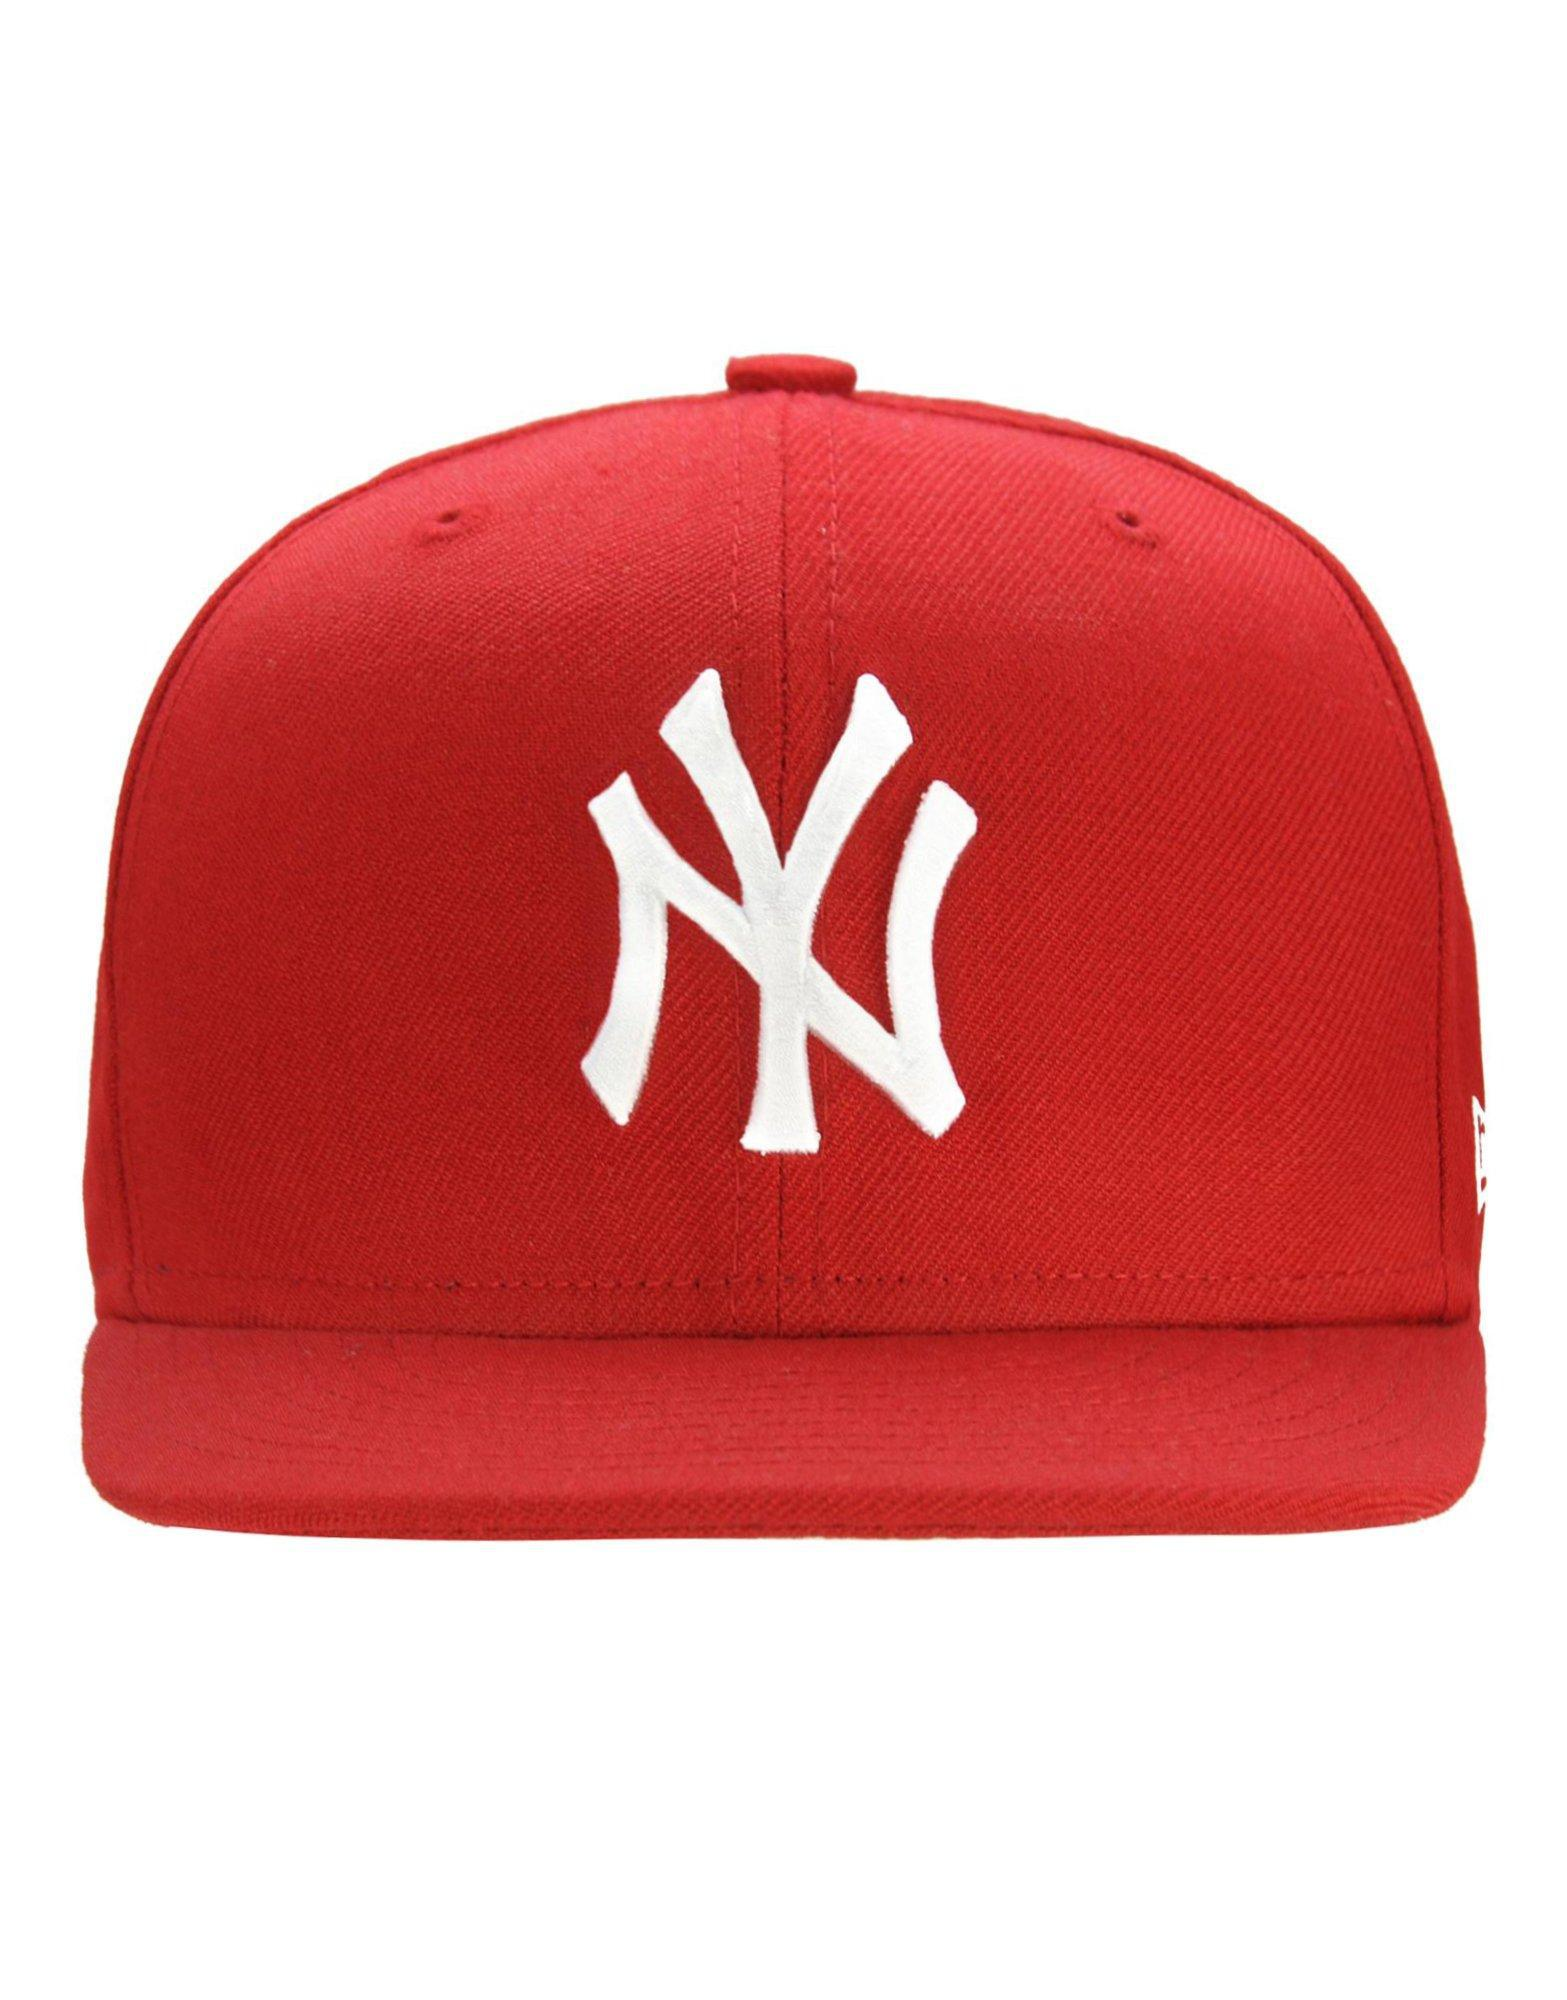 93720ffdad3b0 ... norway lyst ktz mlb new york yankees 59fifty fitted cap in red for men  e33f5 4bb8c